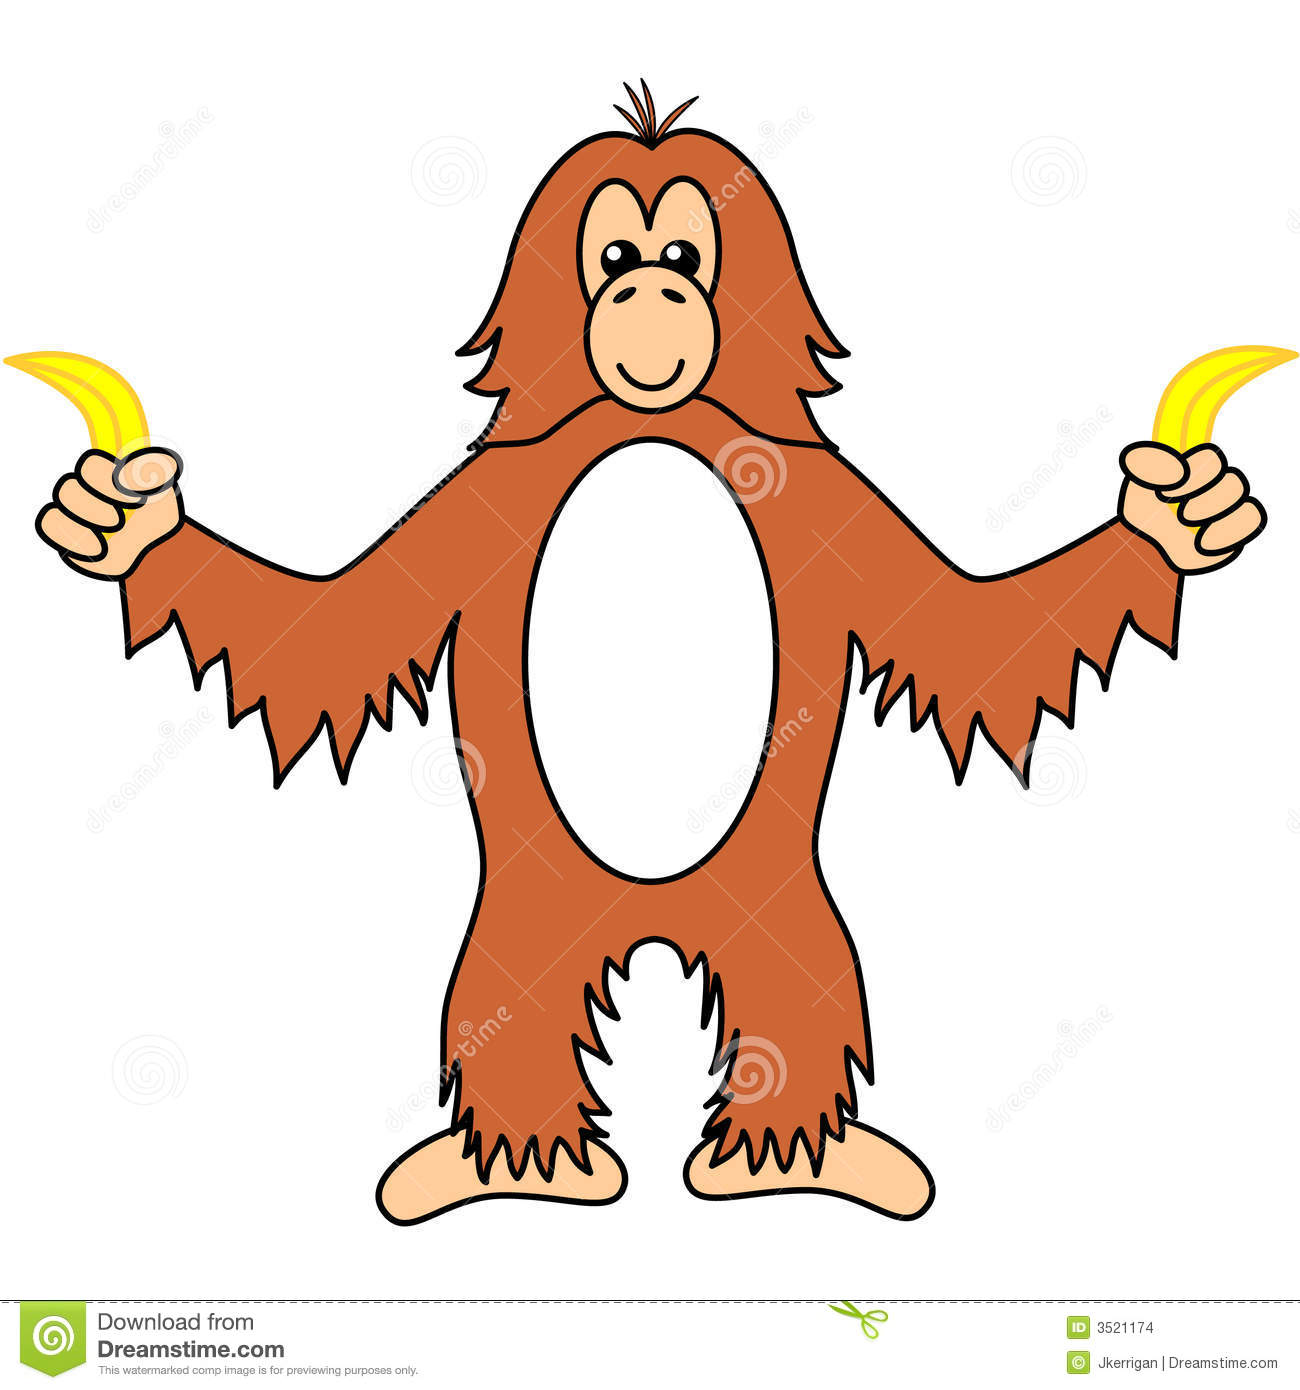 orangutan stock vector image of orangutan  primate  furry ape clip art of ape ape clip art of ape